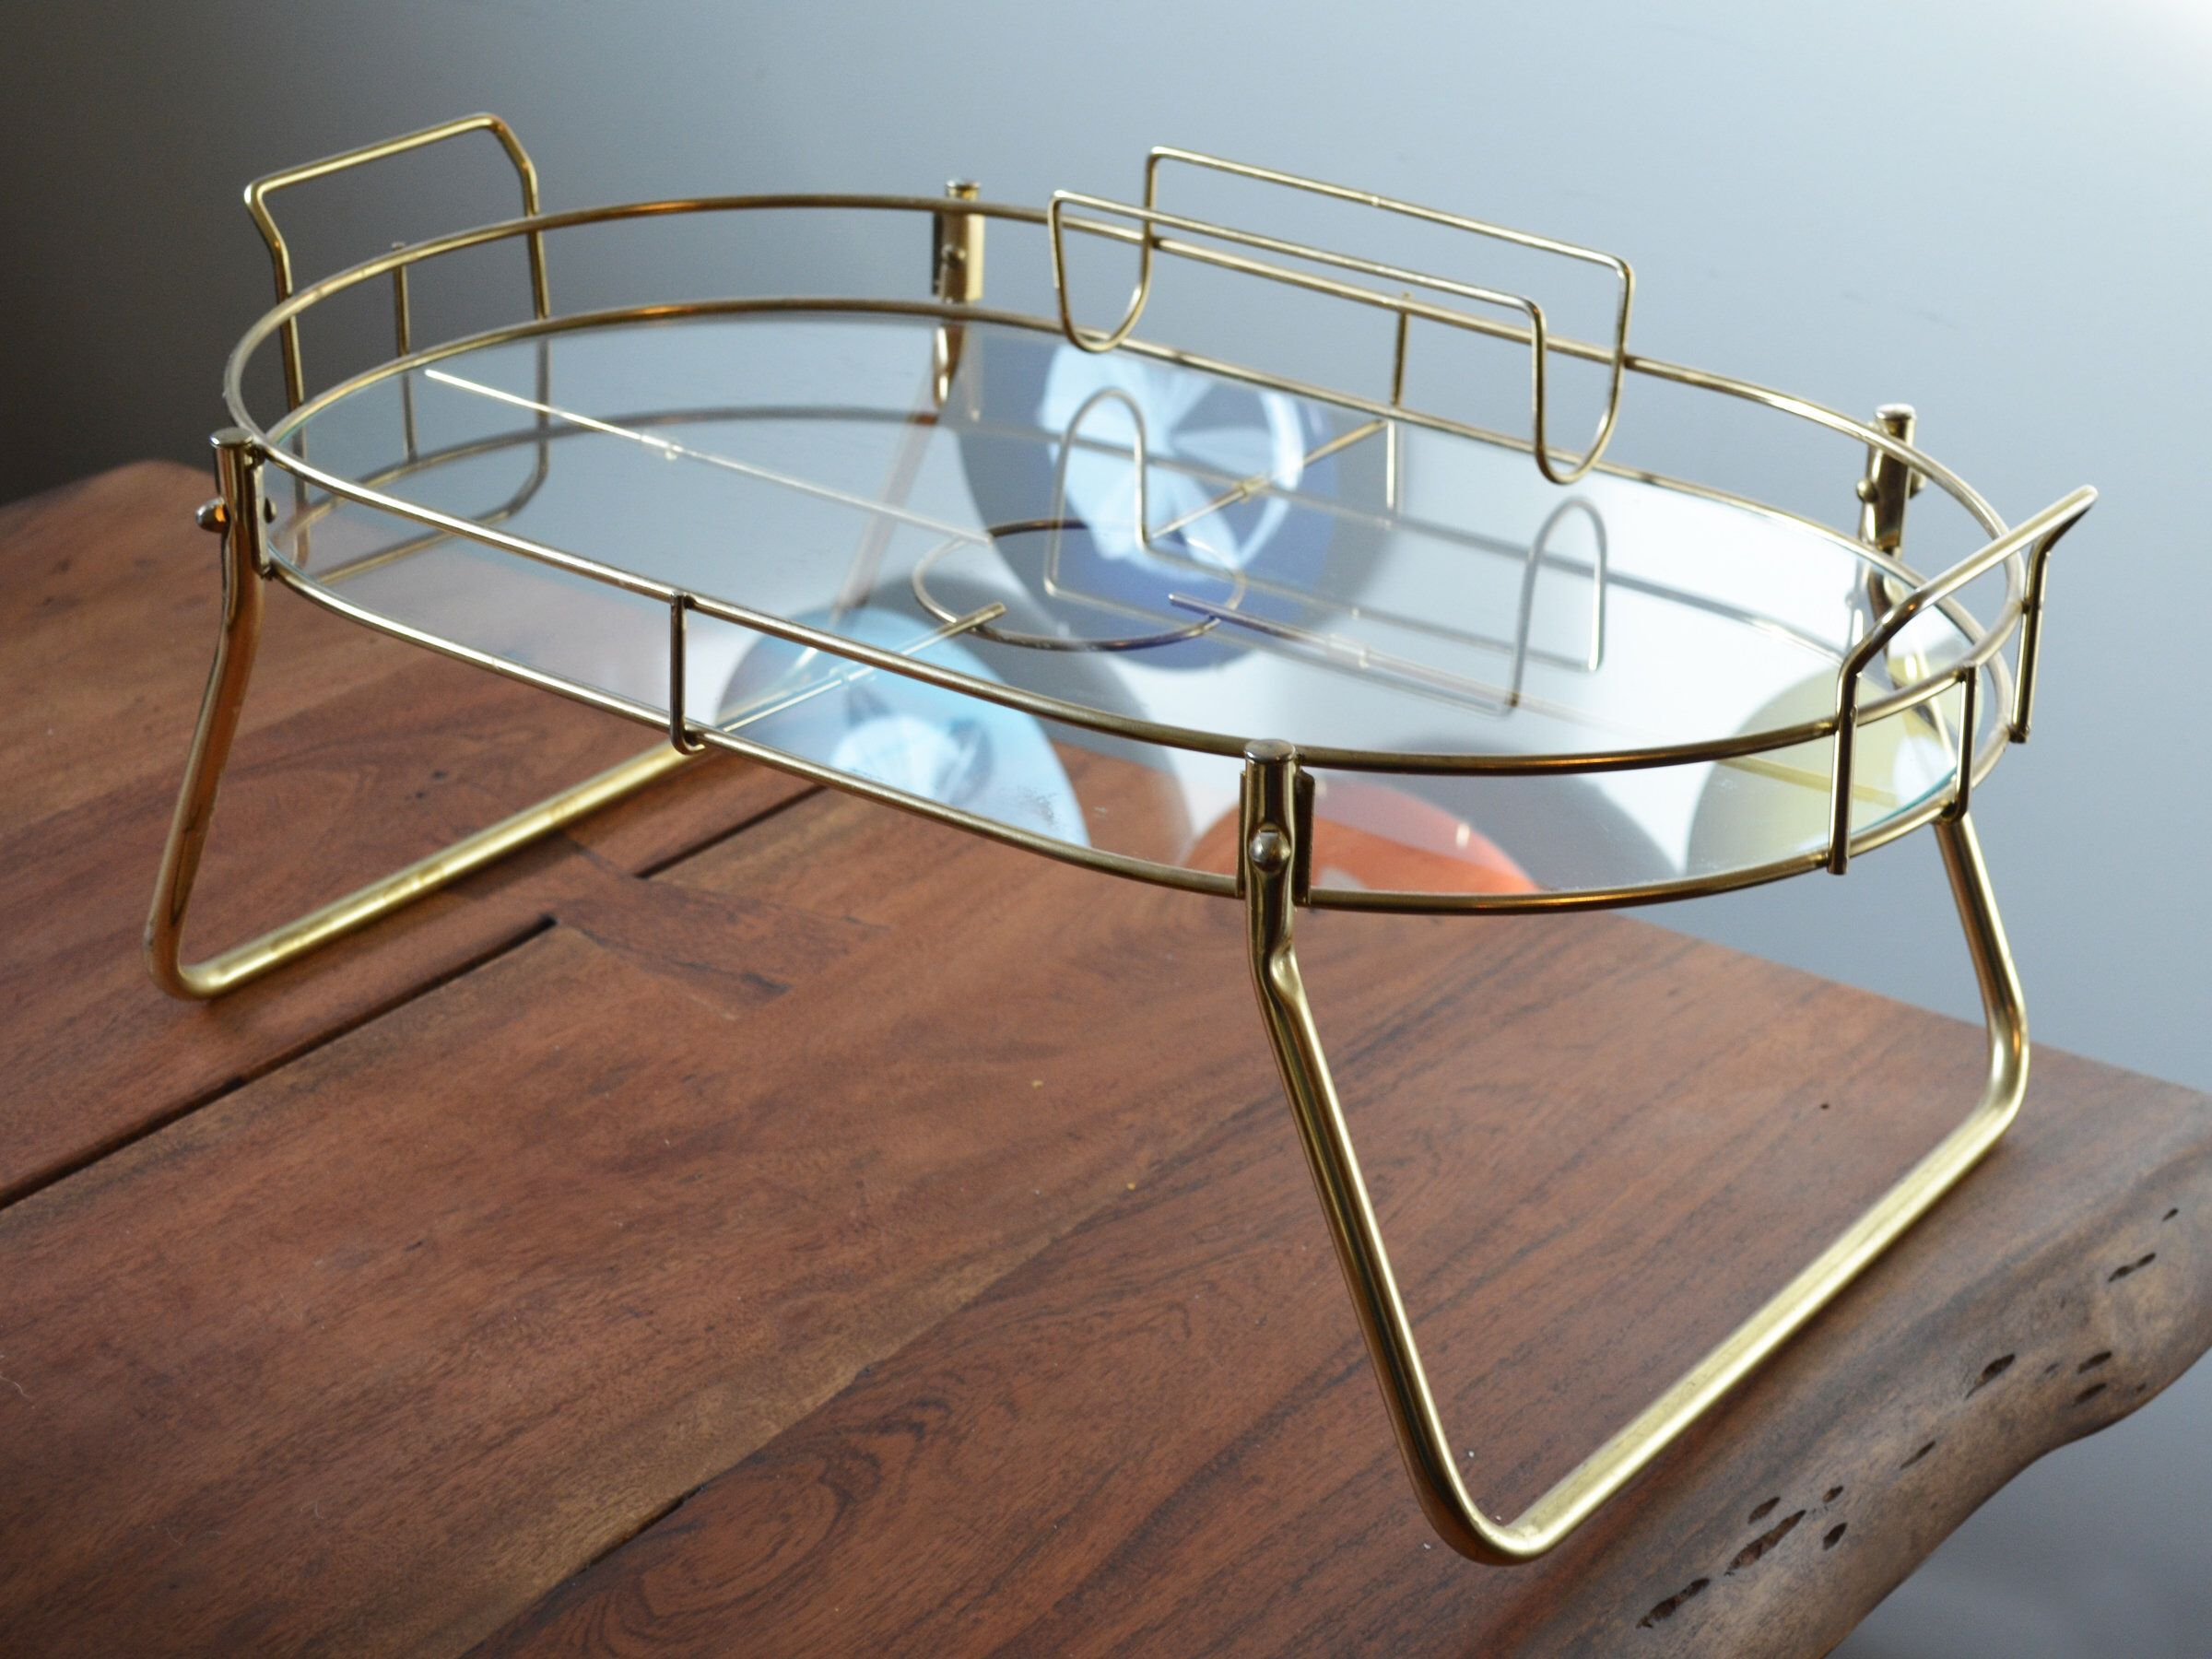 Vintage Brass Breakfast In Bed Tray 25 Across Glass Surface Hollywood Regency Bedroom Circa 1970s Bed Tray Breakfast In Bed Vintage Brass